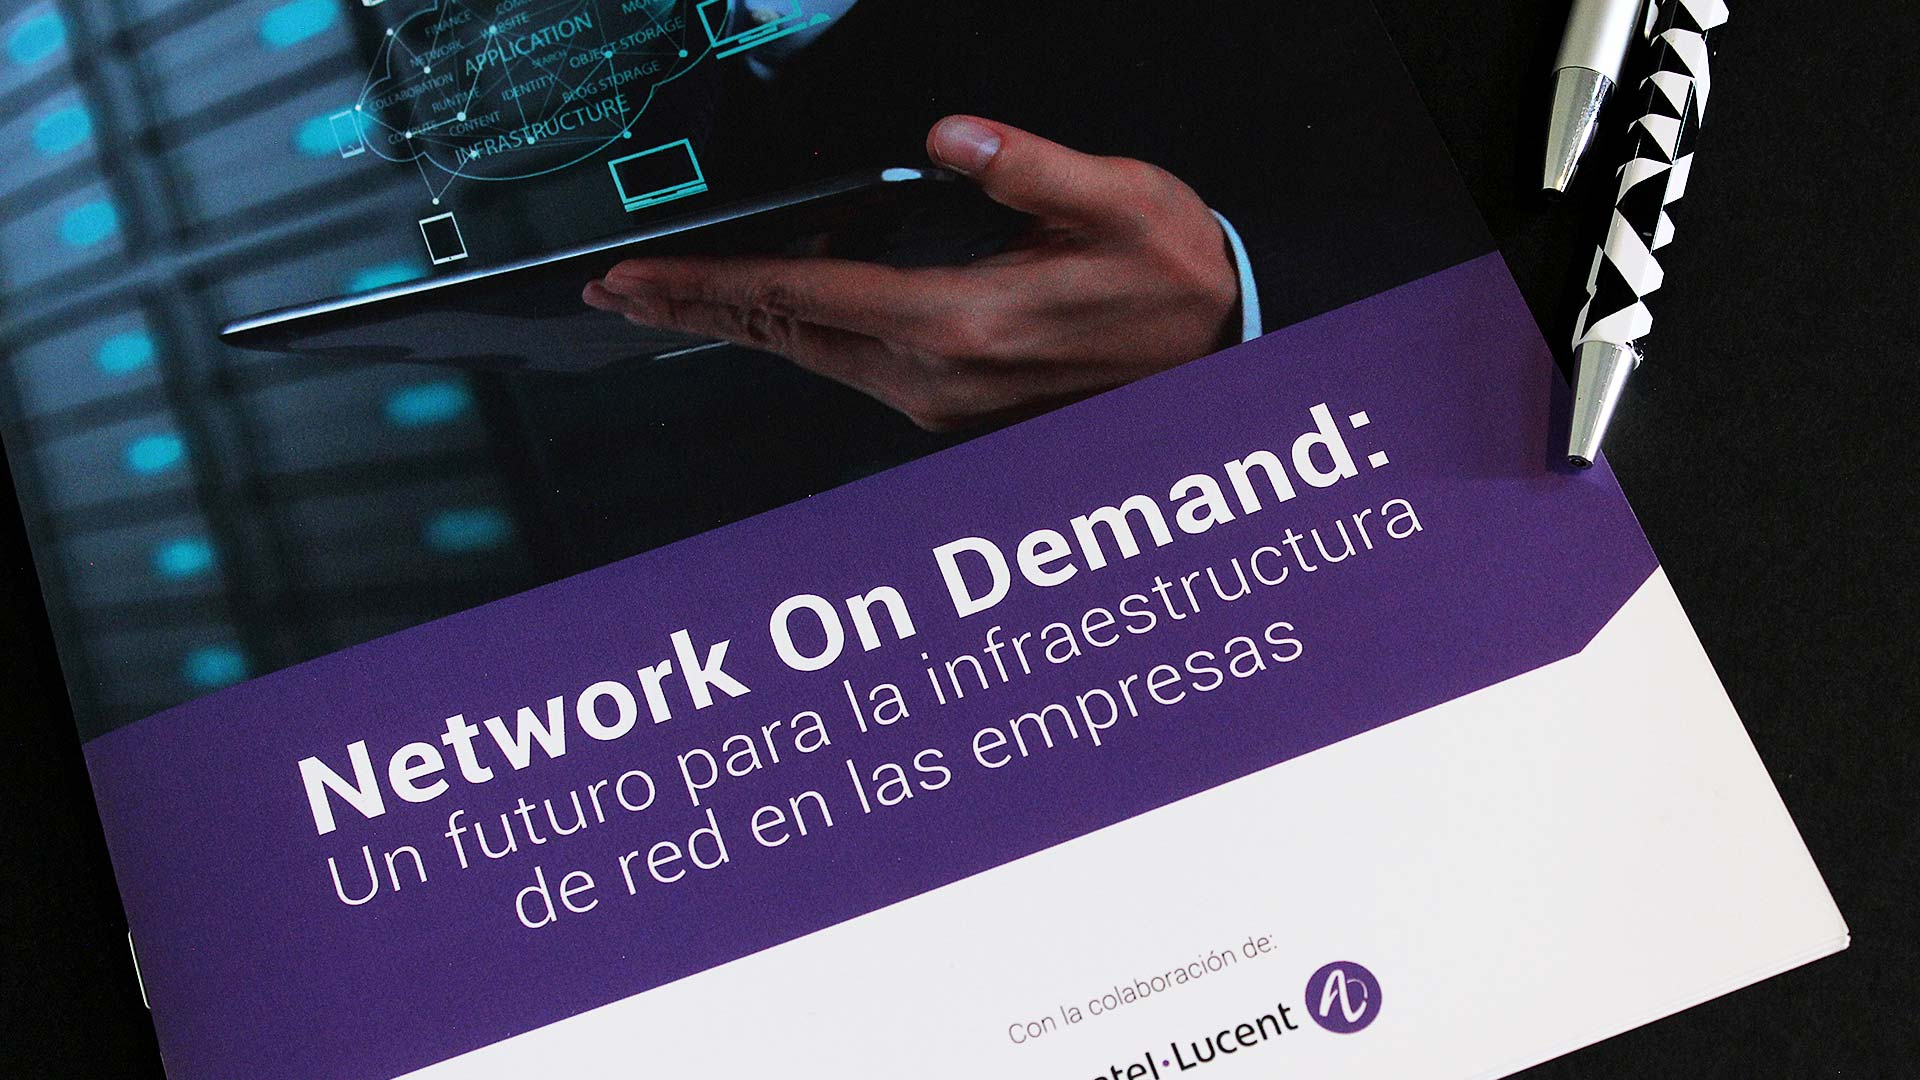 alcatel-content-marketing-informe-resumen-ejecutivo-networkondemand-ebook-2016-07